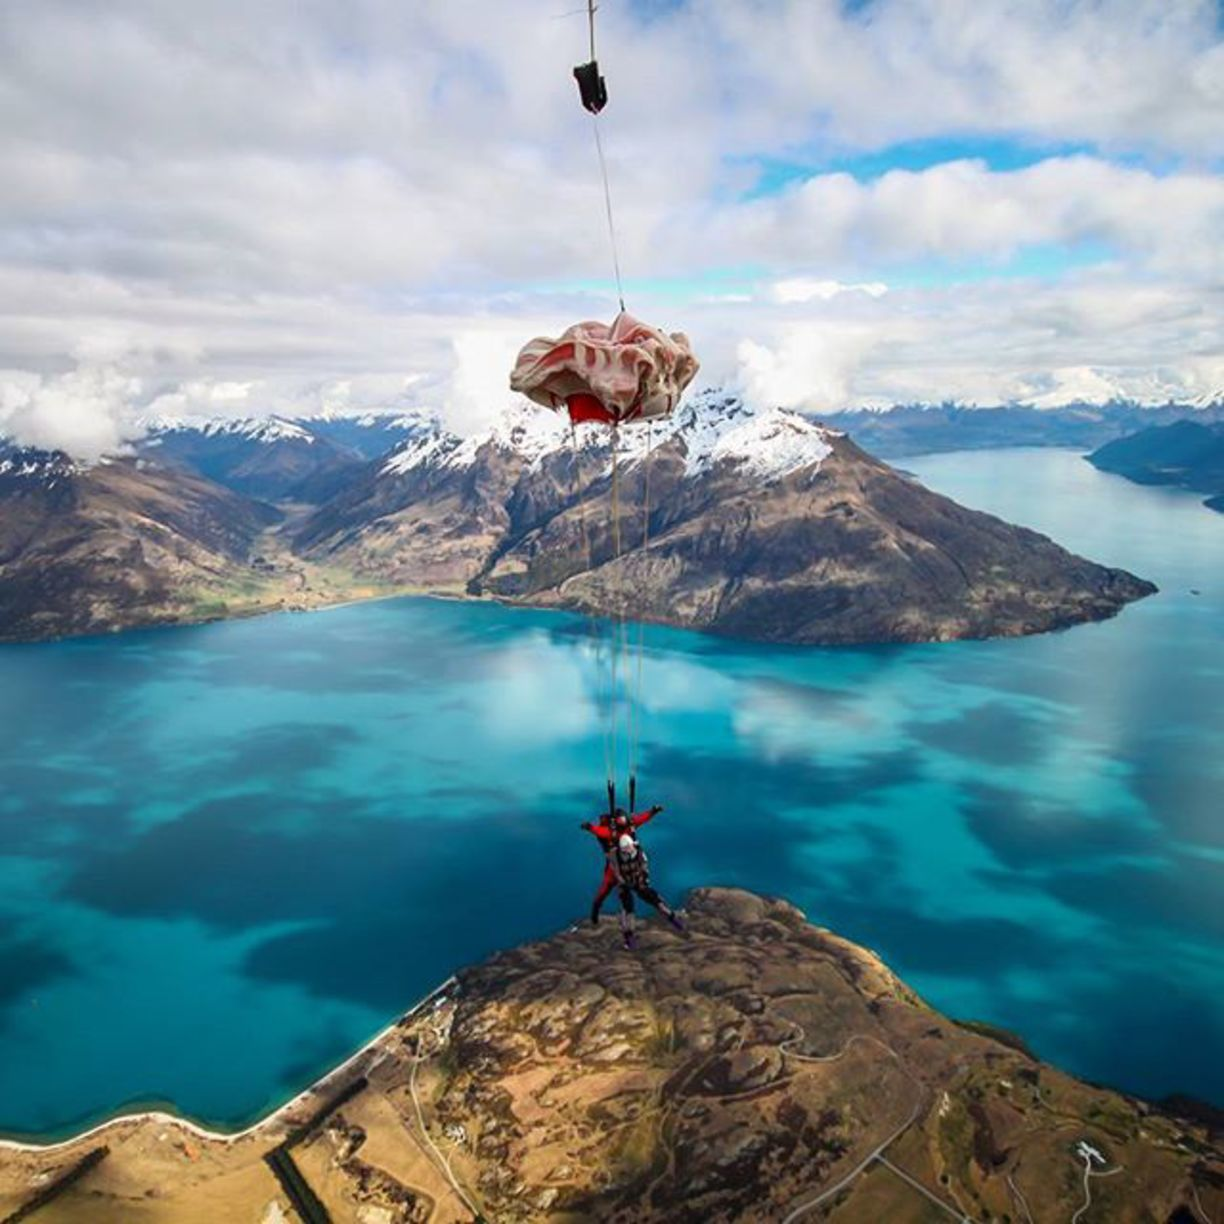 Queenstown Queenstown New Zealand By Nzone Skydive Queenstown New Zealand Queenstown New Zealand Skydiving Landscape Photography